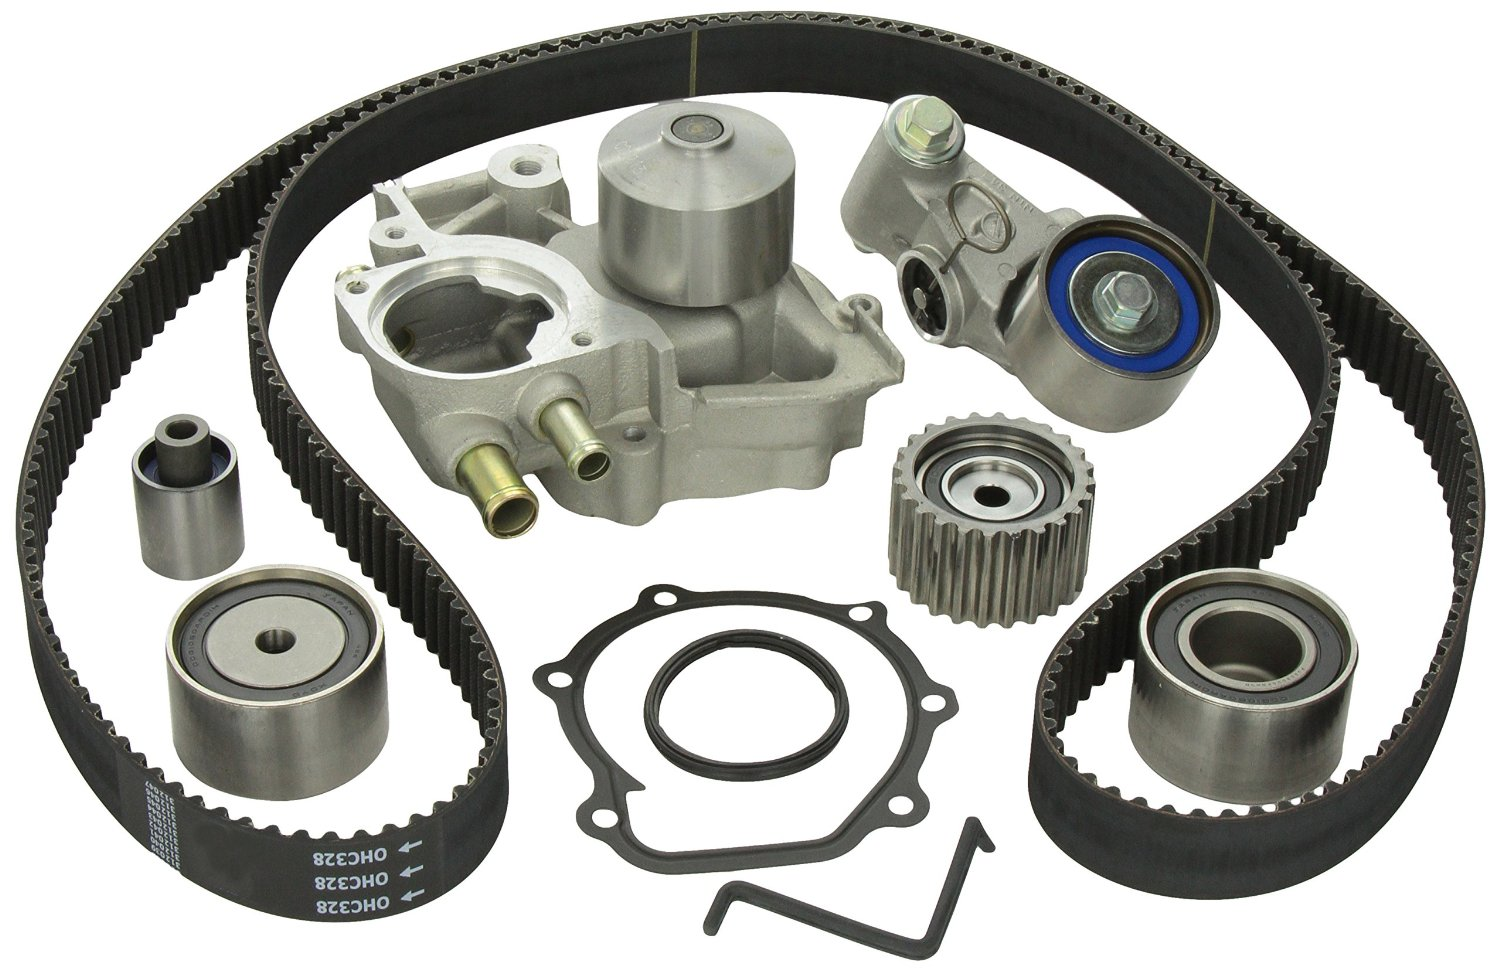 Extreme Psi Your 1 Source For In Stock Performance Parts Timing Belt Chain Gates Complete Racing Kit With Water Pump Subaru Wrx Ej20 04 05 24394